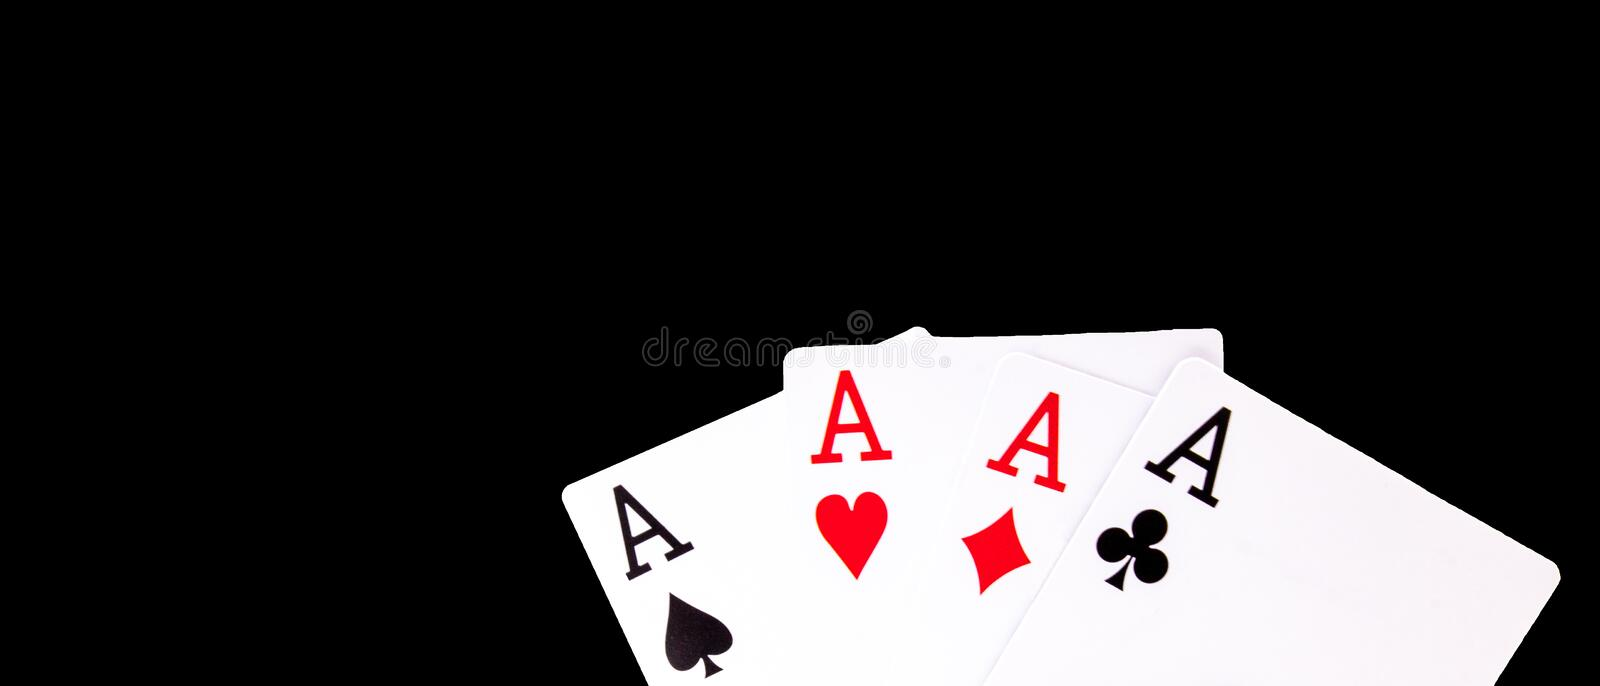 A winning poker hand of four aces playing cards suits on black background stock photo